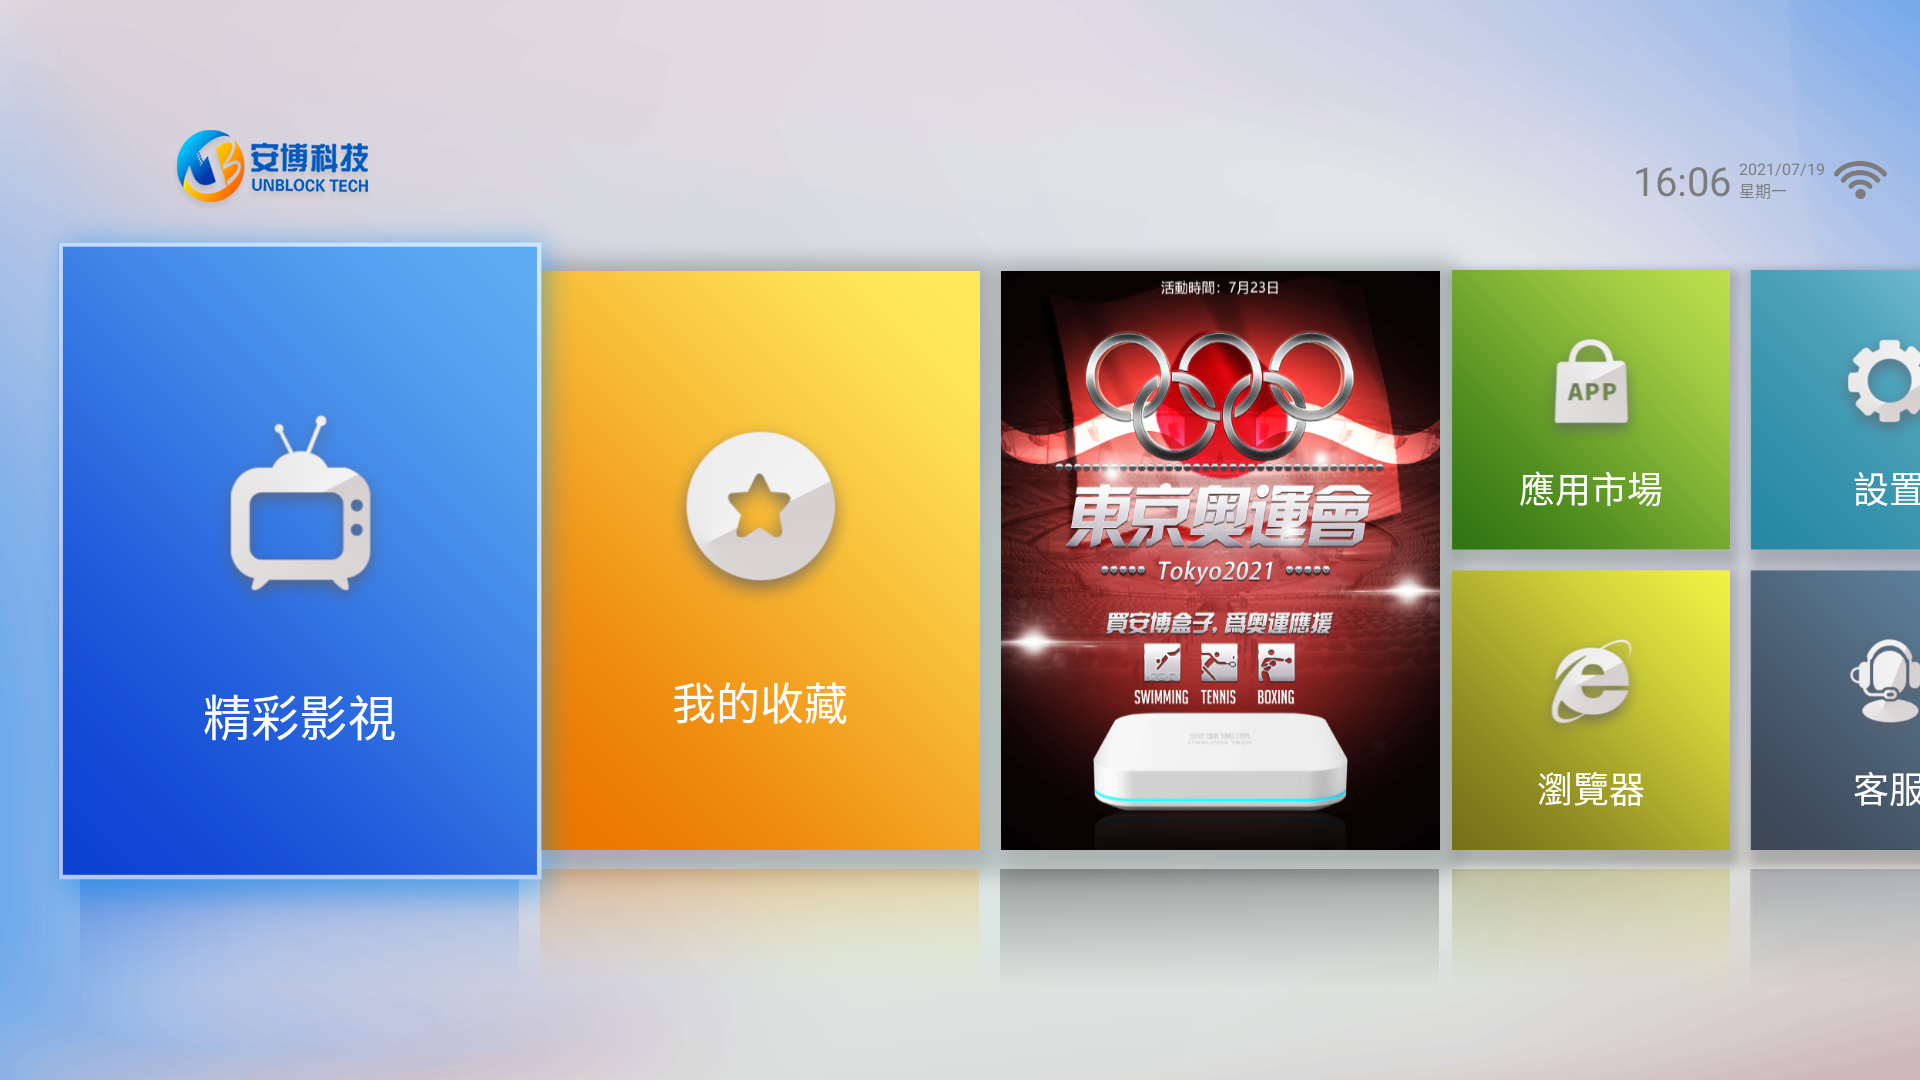 IMartCity Unblock Tech TV Box UBox Gen 8 Pro Max UPros Pros Gen 7 UPro2 Pro2 Gen 6 Hong Kong Edition Watch Many Worldwide Channels TV programs Movies Dramas Live Shows Free No Extra Payment Use Anytime Anywhere Settings Set Up Guide Connect to TV Home Page Screen 安博盒子第八代 第七代 第六代 電視盒子 設定 連接電視 主頁